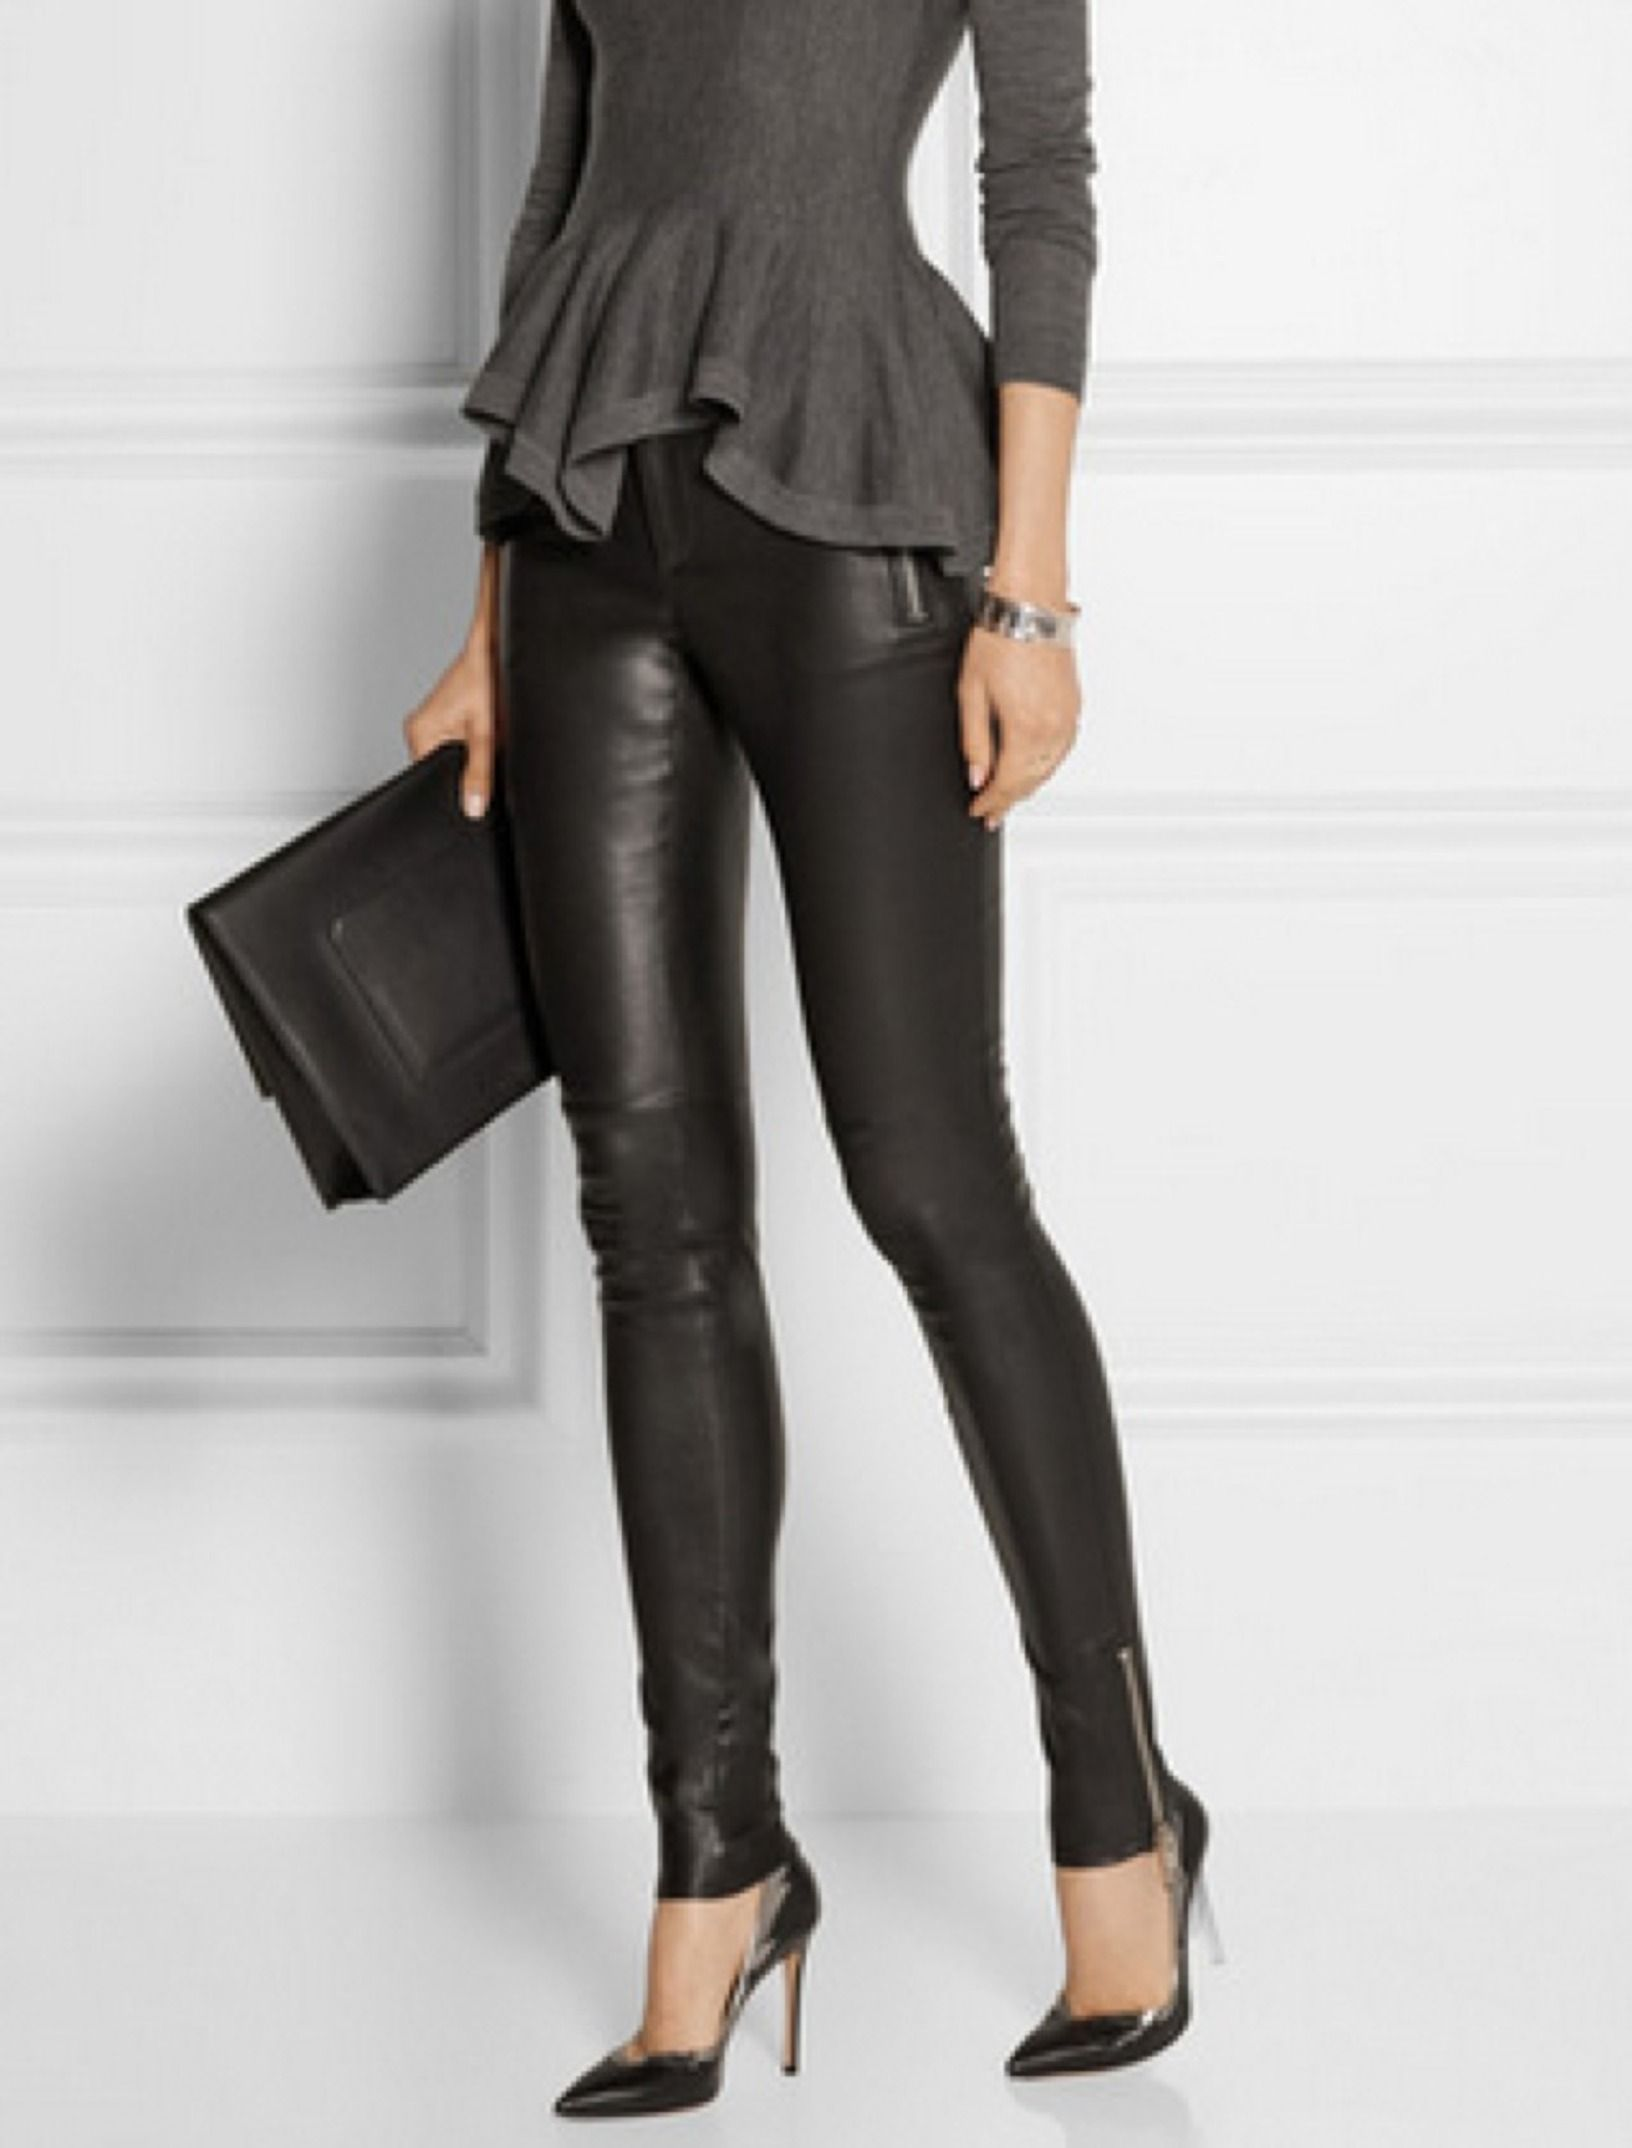 Leather leggins Gucci | Fashion | Pinterest | Gucci Leather and Clothes